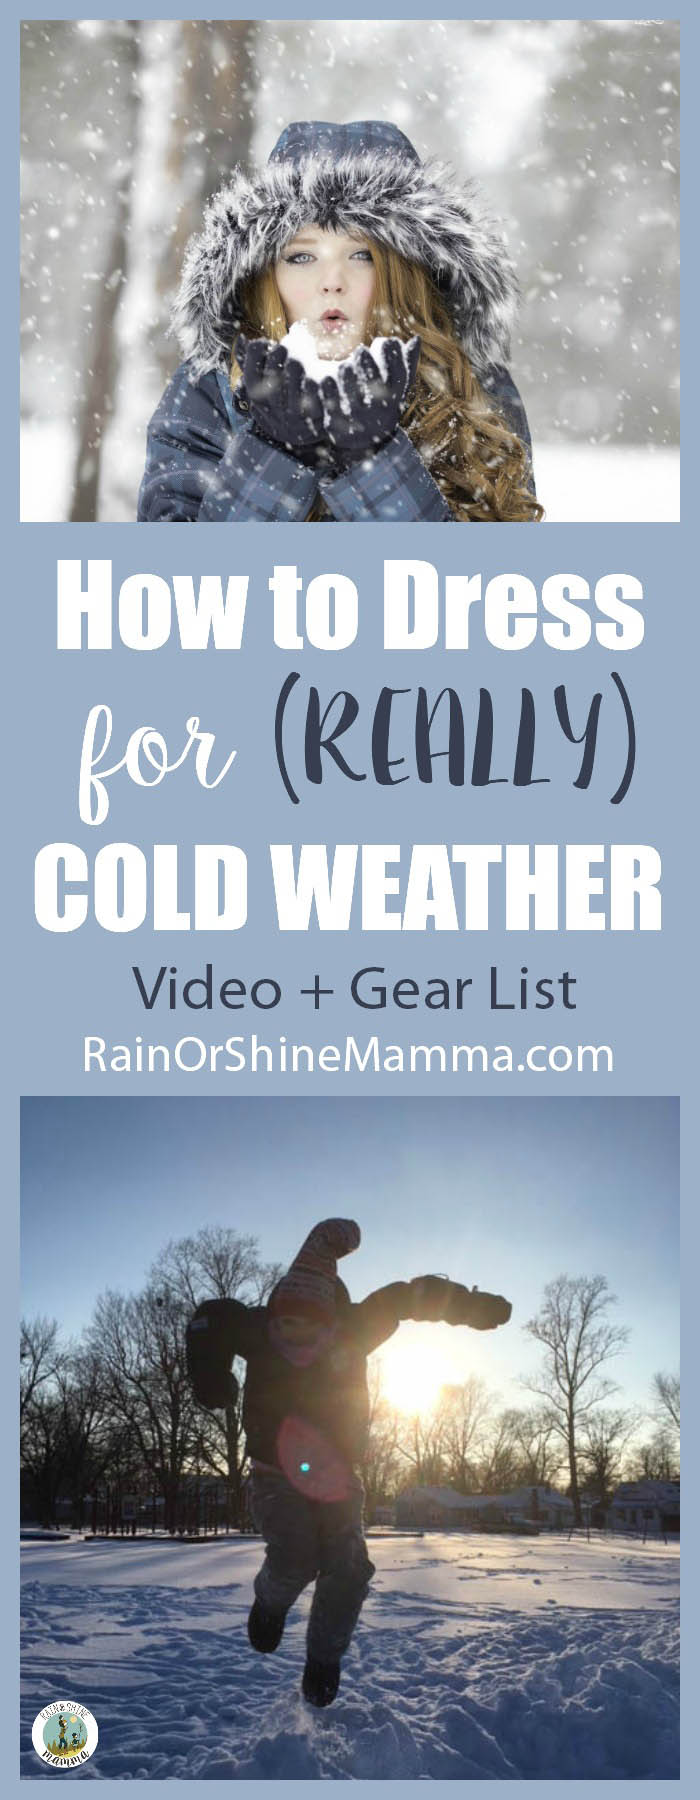 How to Dress for Cold Weather (Video and Complete Gear List). Tips for dressing kids for winter from Rain or Shine Mamma. #winter #gear #cold #outdoor